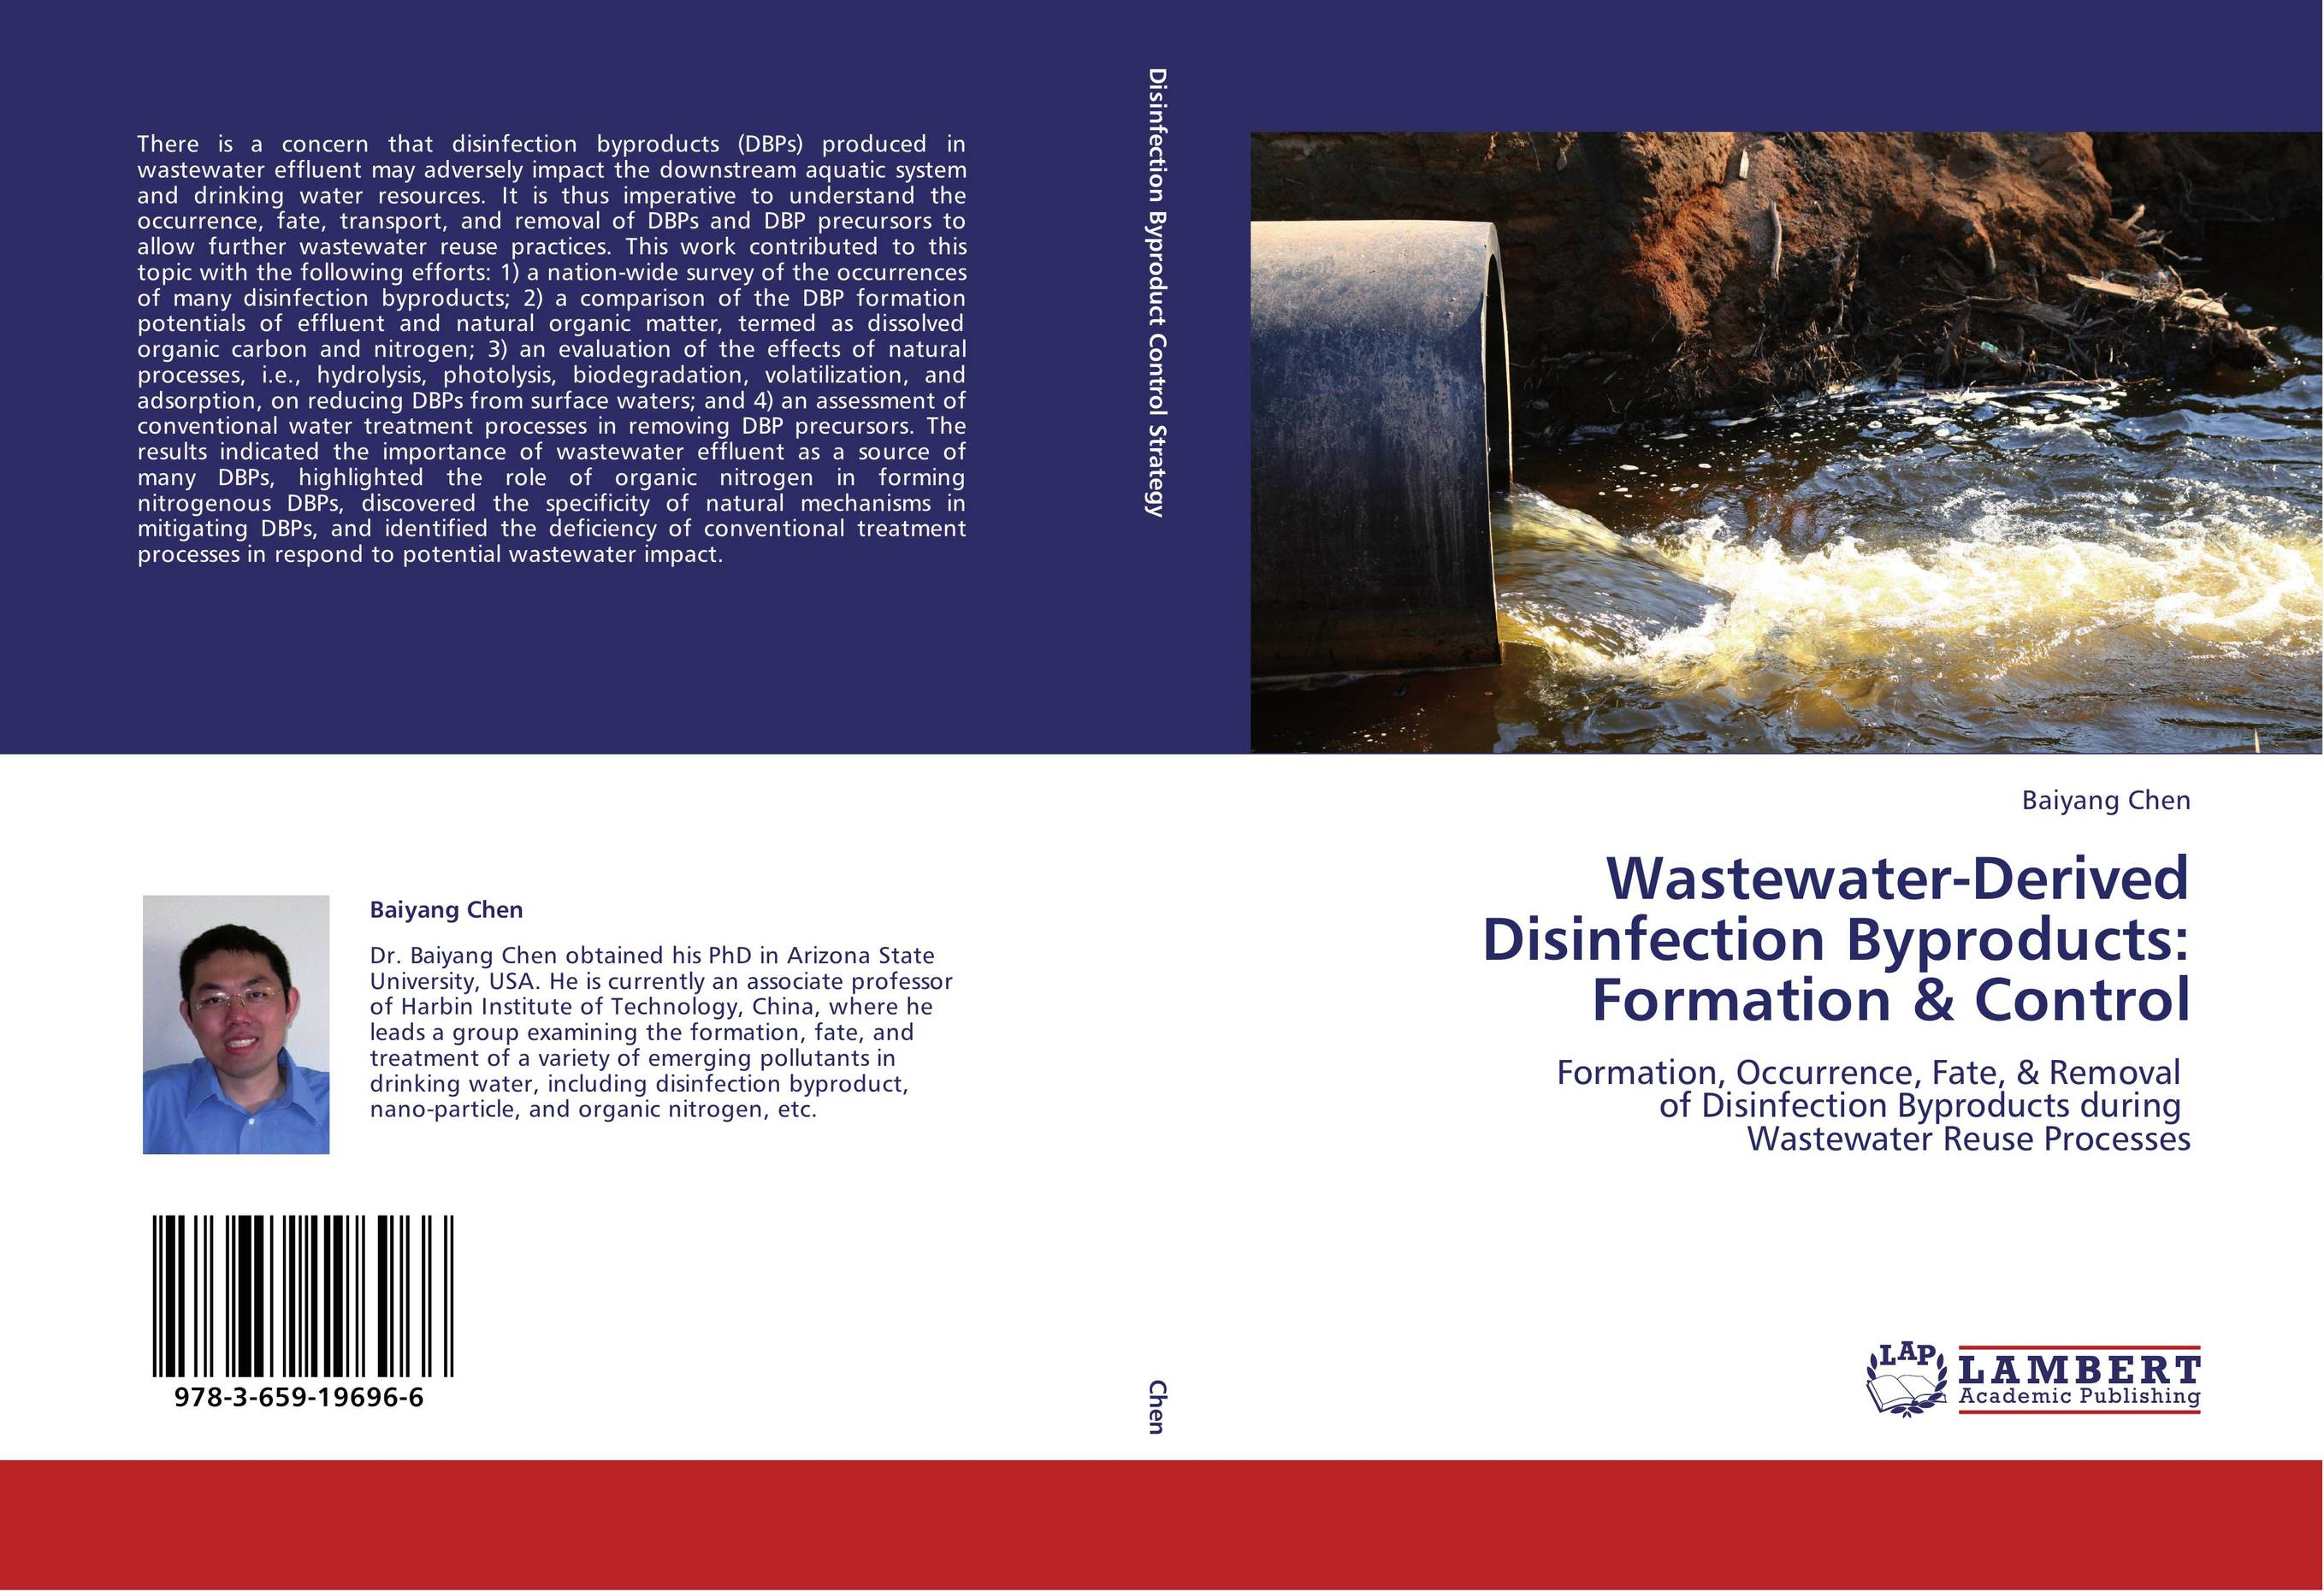 9783659196966 WastewaterDerived Disinfection Byproducts Formation & Control